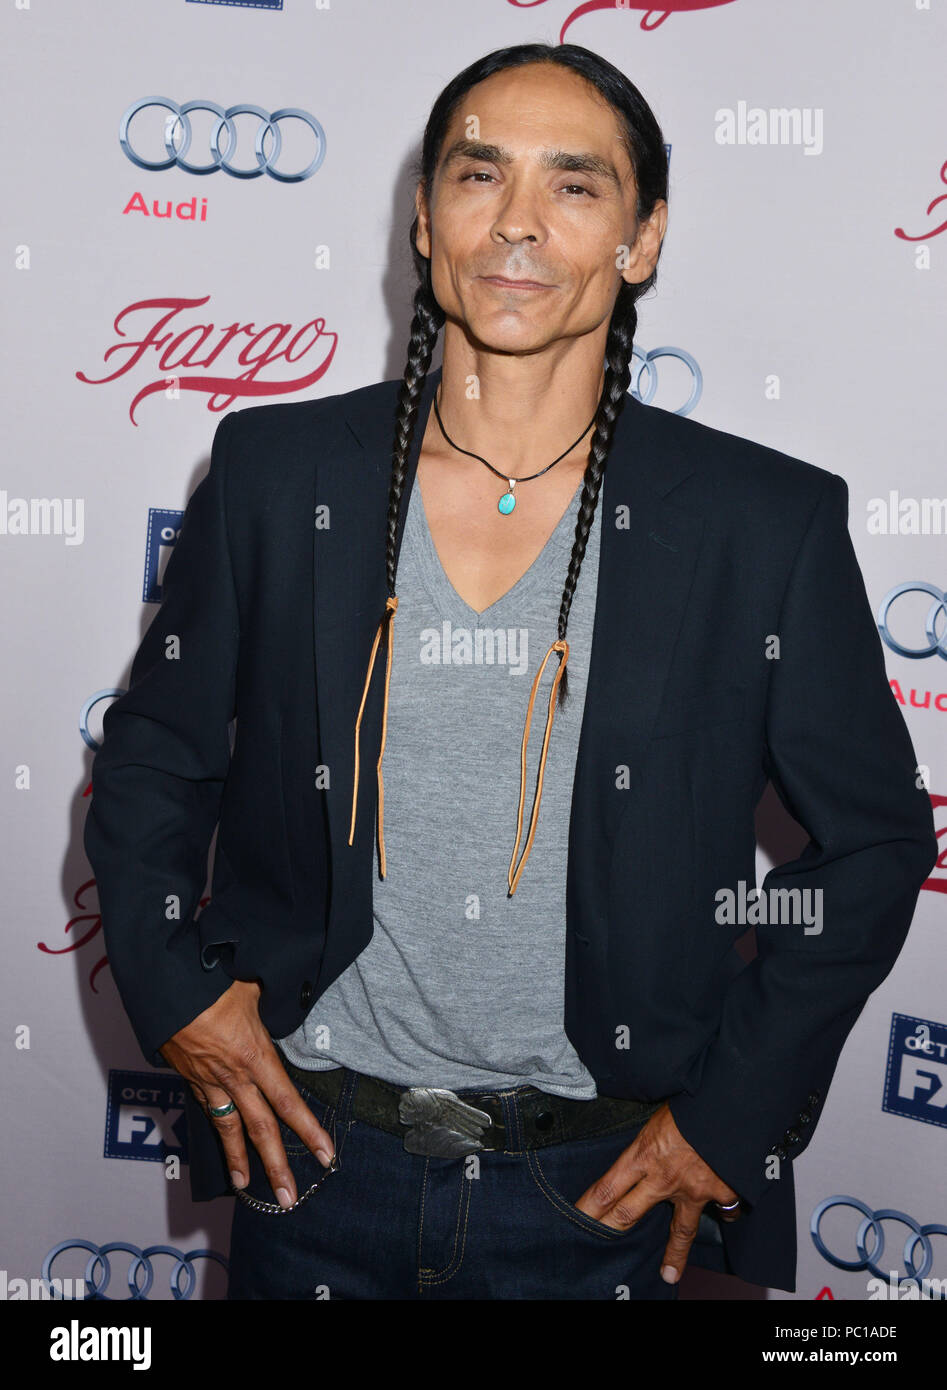 Zahn McClarnon  at the Fargo Premiere at the Arclight Theatre in Los Angeles. October, 7, 2015. Zahn McClarnon  ------------- Red Carpet Event, Vertical, USA, Film Industry, Celebrities,  Photography, Bestof, Arts Culture and Entertainment, Topix Celebrities fashion /  Vertical, Best of, Event in Hollywood Life - California,  Red Carpet and backstage, USA, Film Industry, Celebrities,  movie celebrities, TV celebrities, Music celebrities, Photography, Bestof, Arts Culture and Entertainment,  Topix, Three Quarters, vertical, one person,, from the year , 2015, inquiry tsuni@Gamma-USA.com - Stock Image